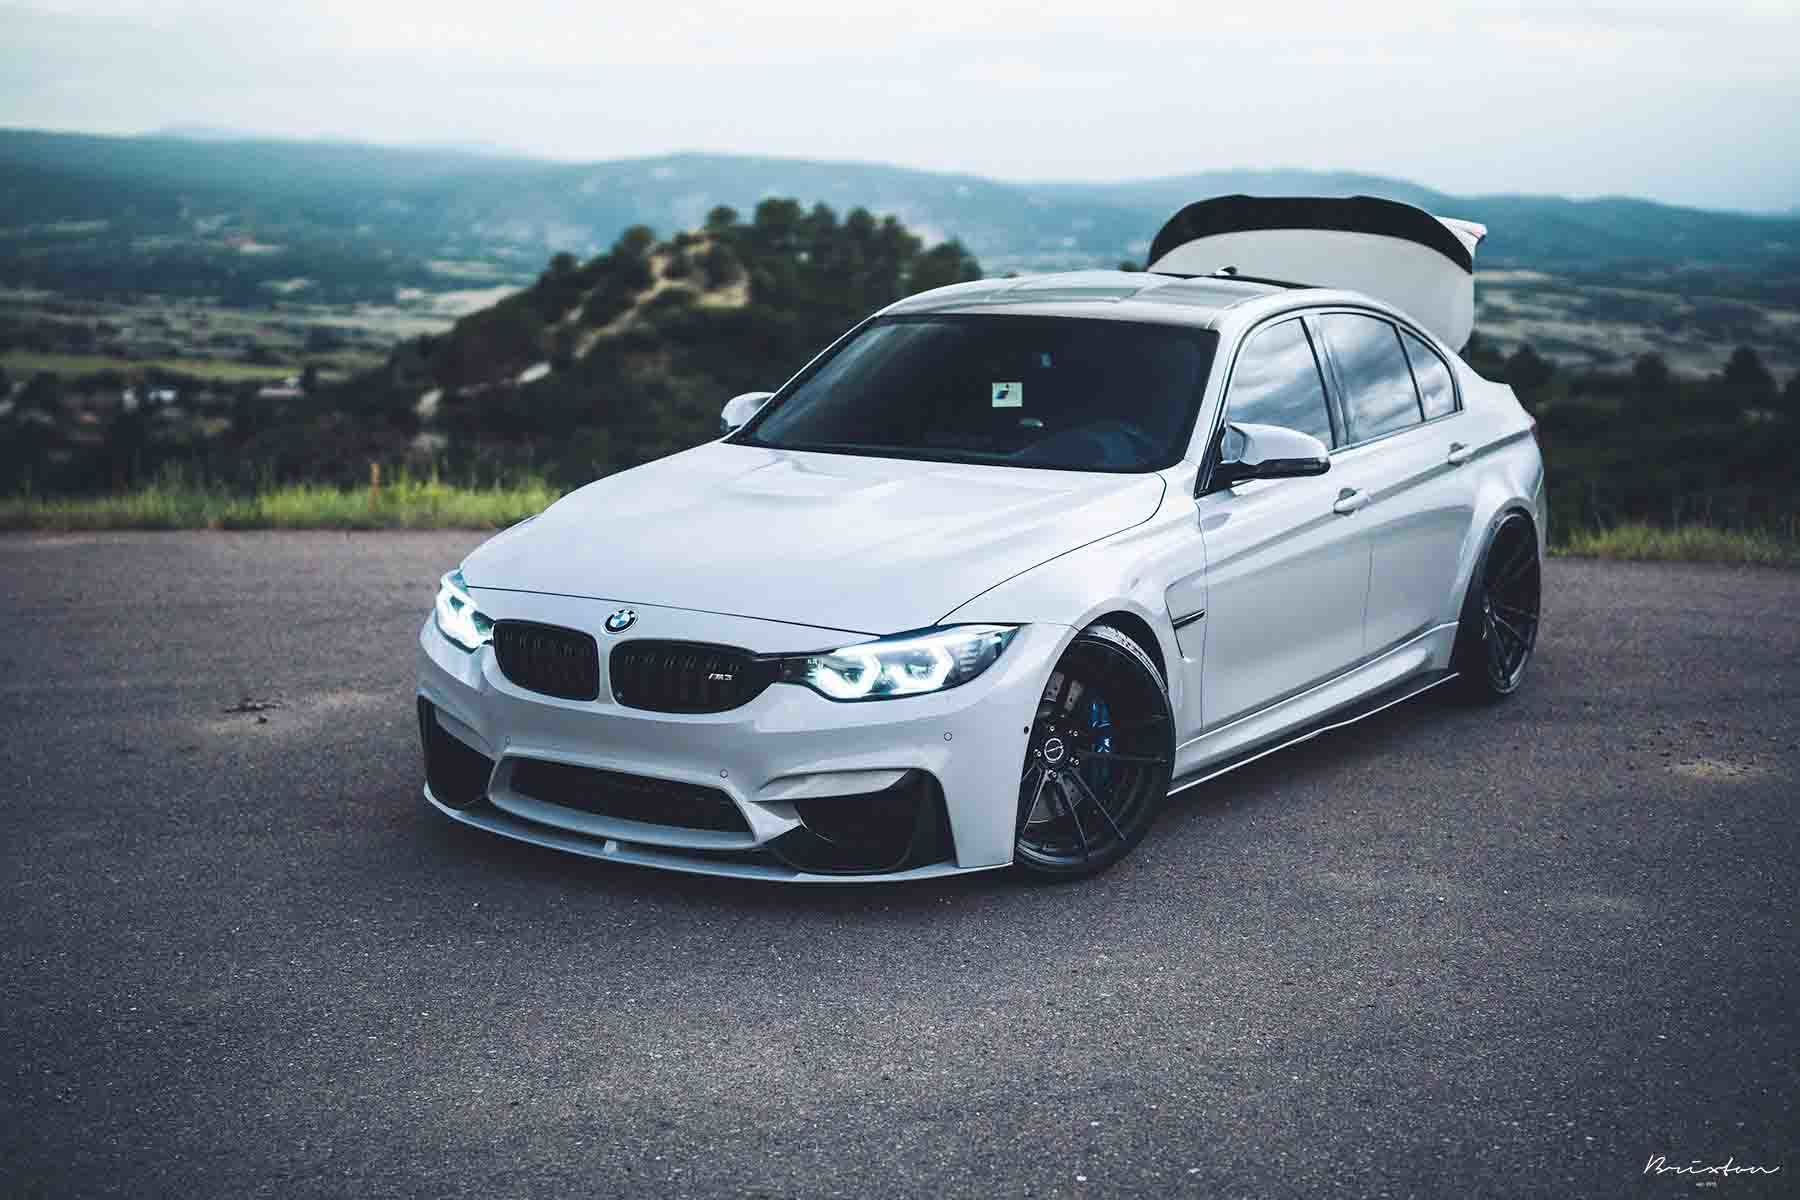 images-products-1-2191-232974479-bmw-f80-m3-brixton-forged-m51-02-1800x1200.jpg